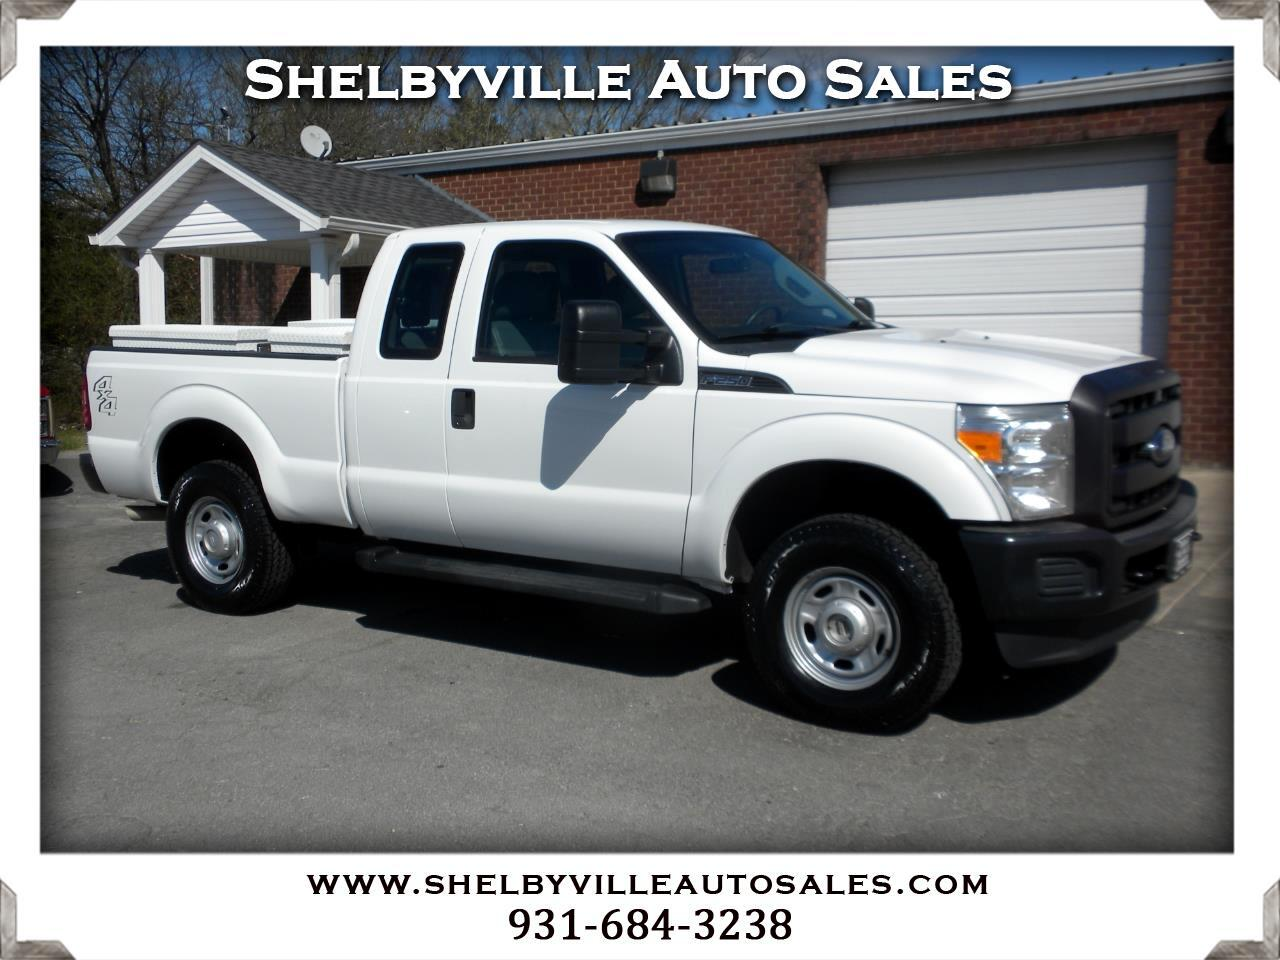 2013 Ford Super Duty F-250 SRW 4X4 SuperCab XL